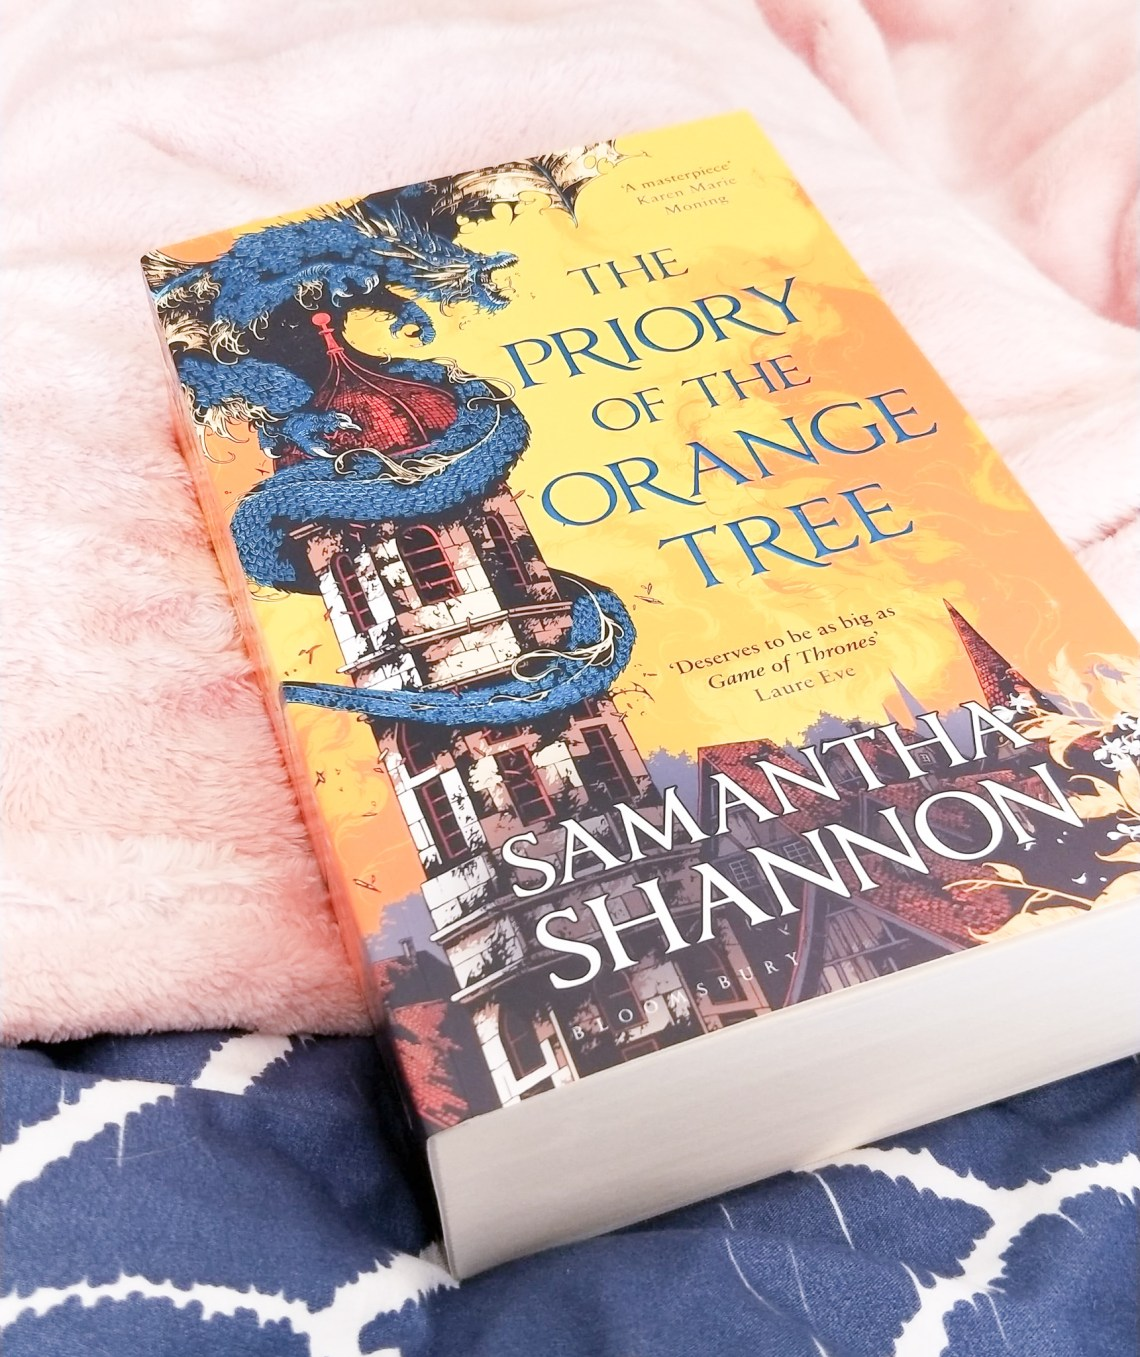 57155057 438783616928552 2609963656259043328 n 2 - The Priory of The Orange Tree Book Review